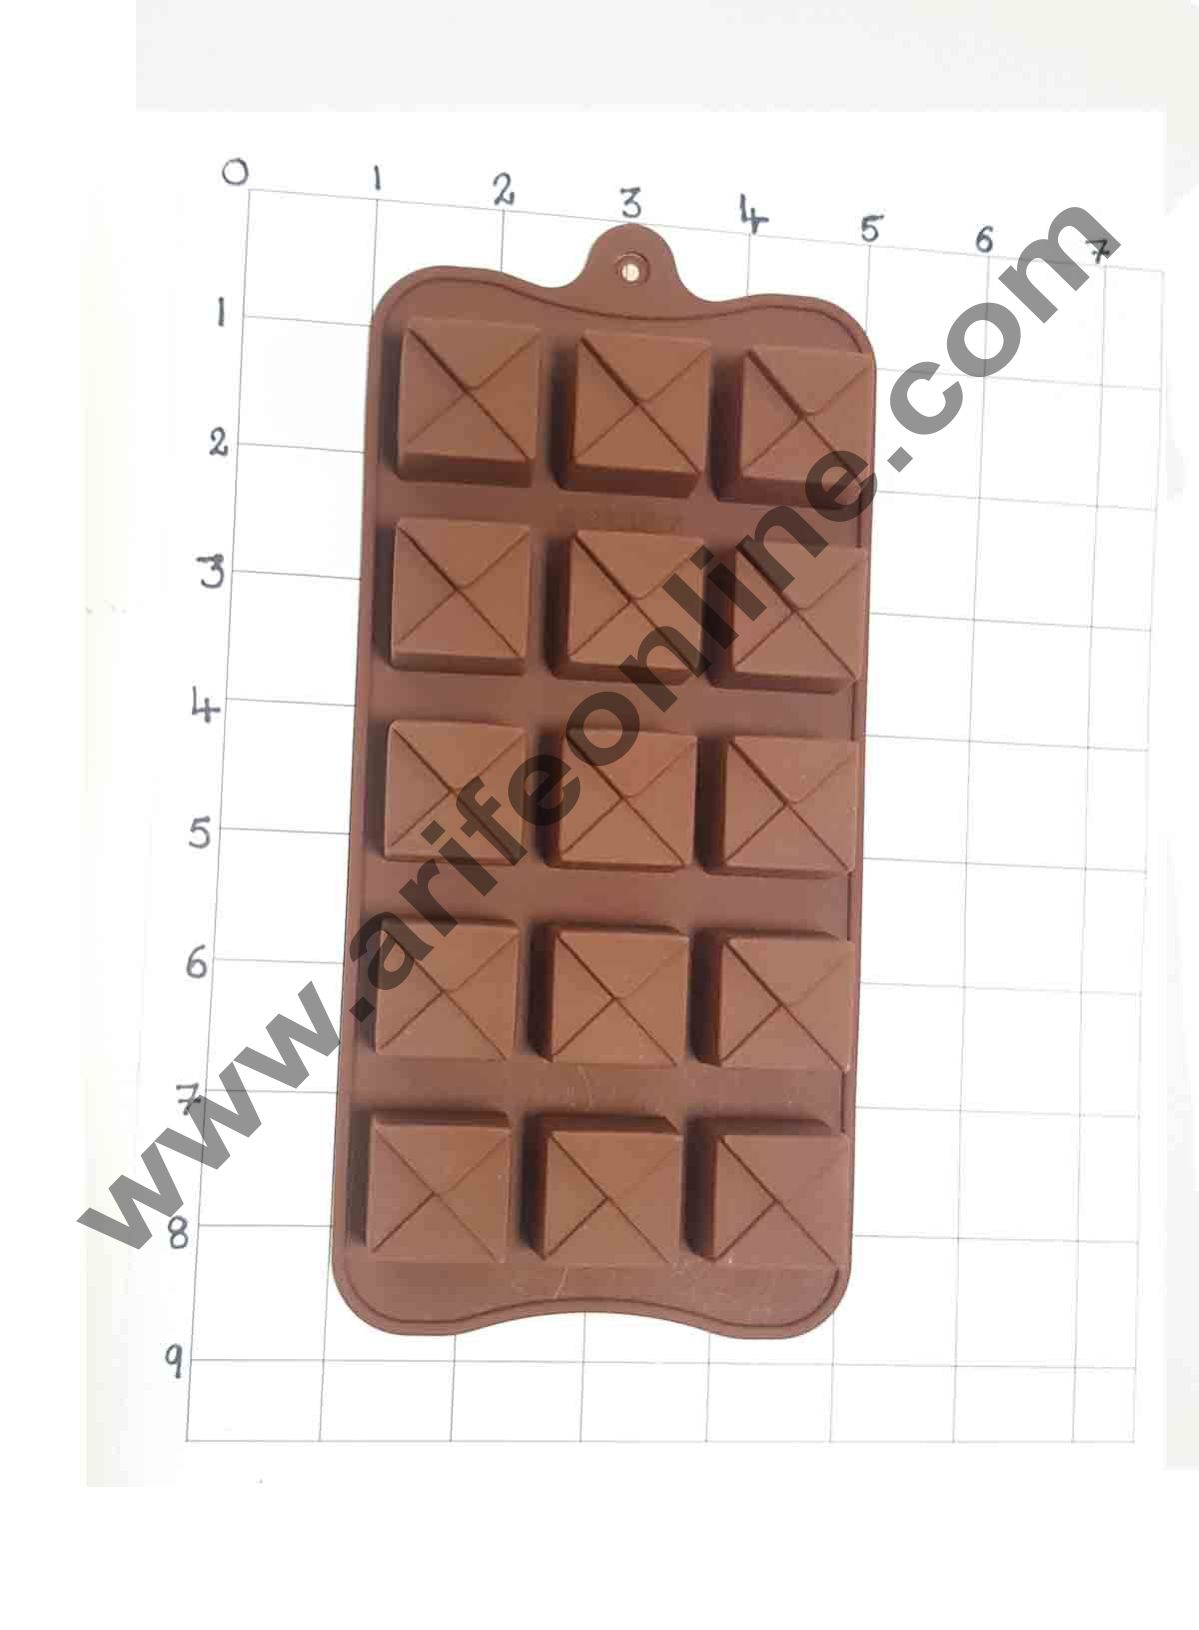 Cake Decor Silicon 15 Cavity Envelope Design Brown Chocolate Mould, Ice Mould, Chocolate Decorating Mould